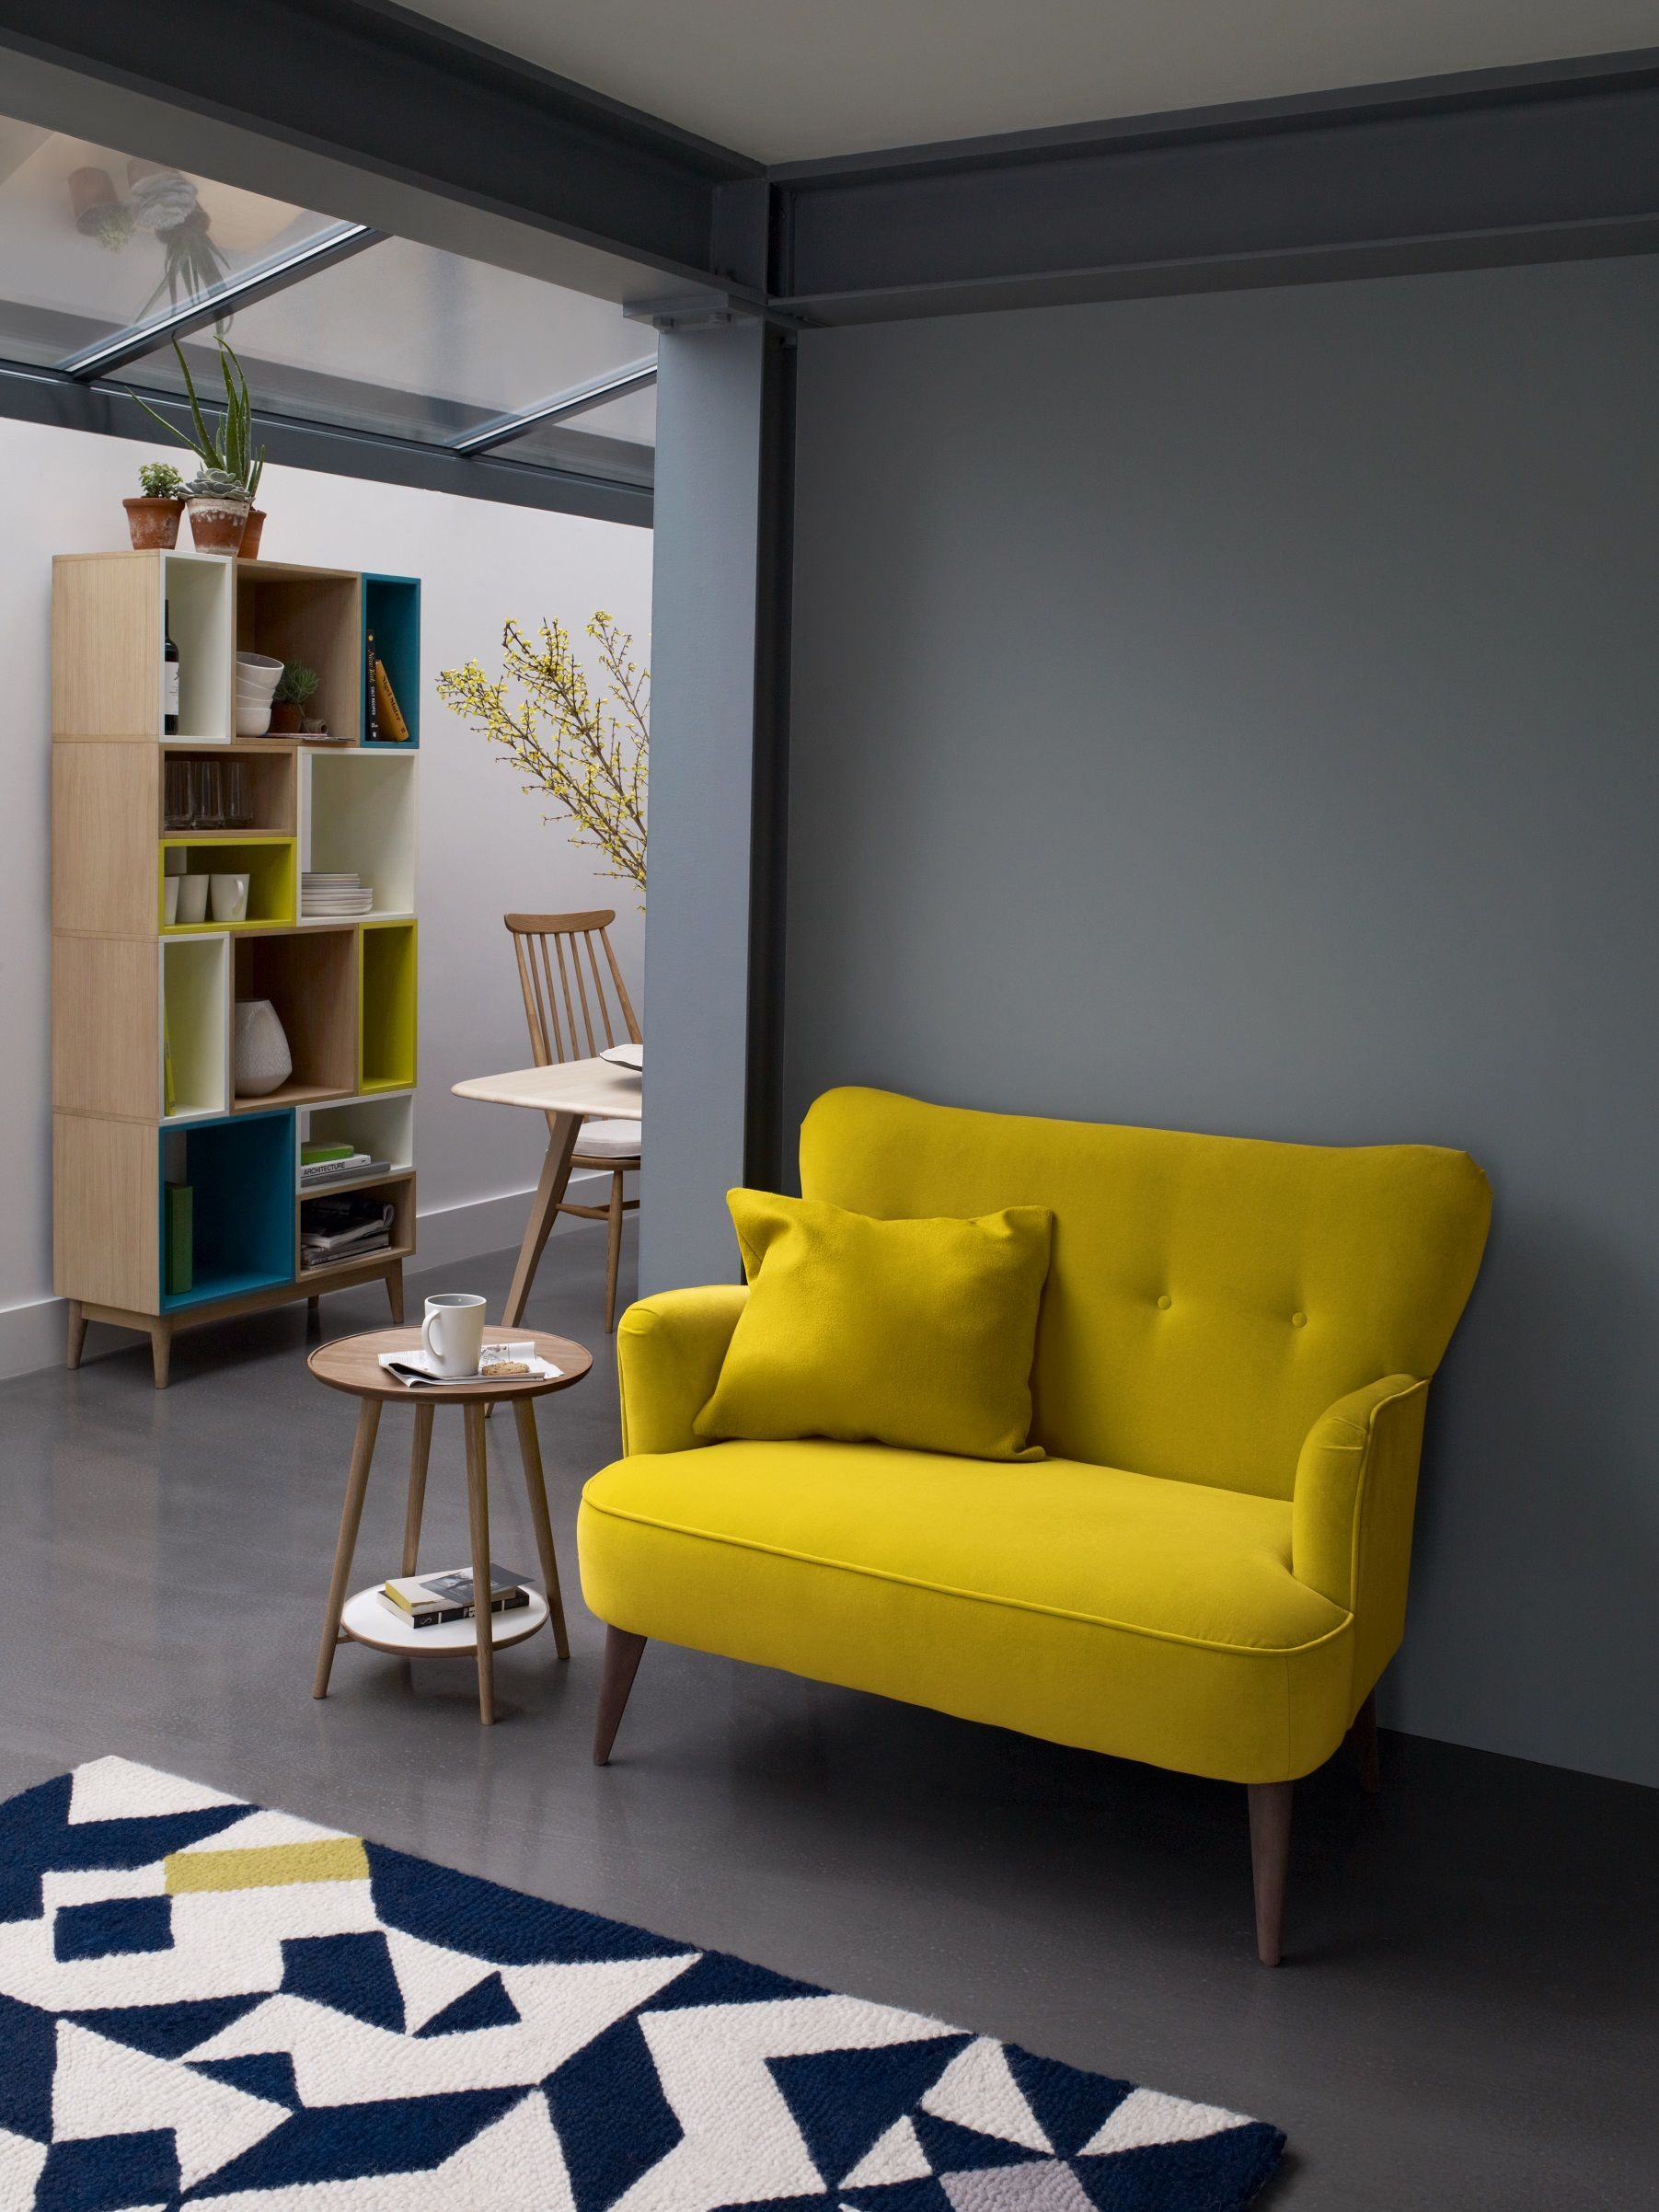 Yellow Living Room Furniture Amarillo Y Gris  Dulce Hogar  Pinterest  Key Room And Bedrooms